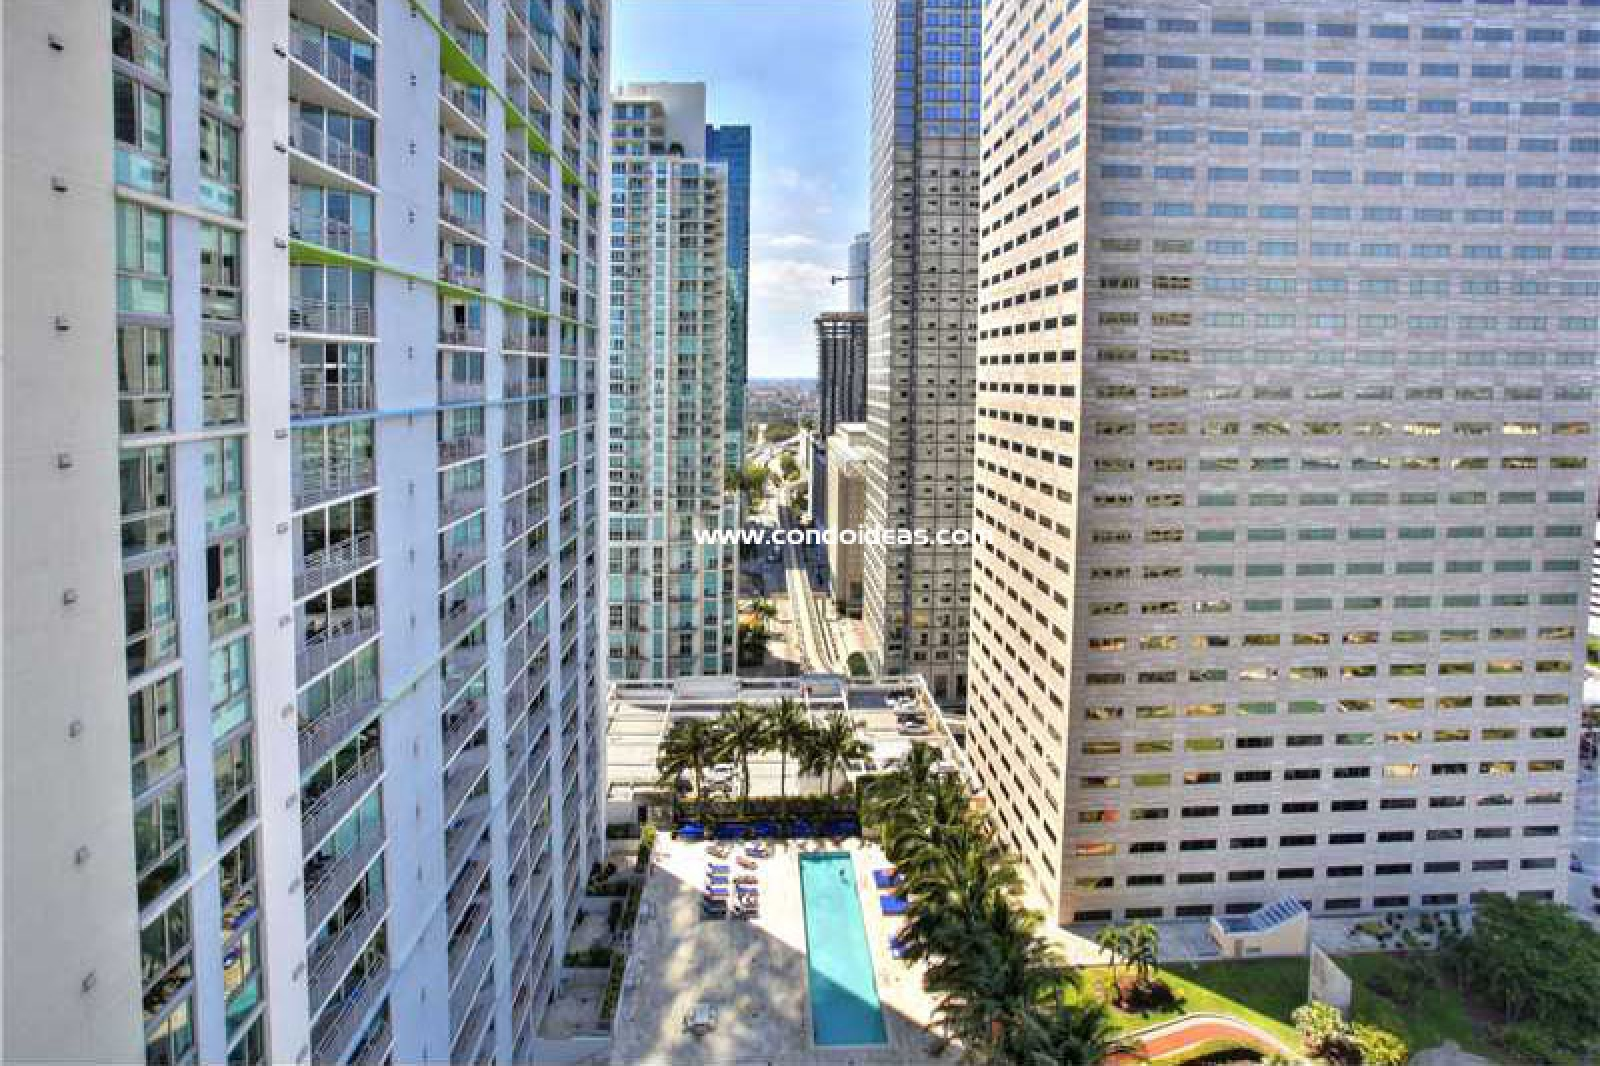 One Miami Condo View Luxury Condos For Sale At One Miami